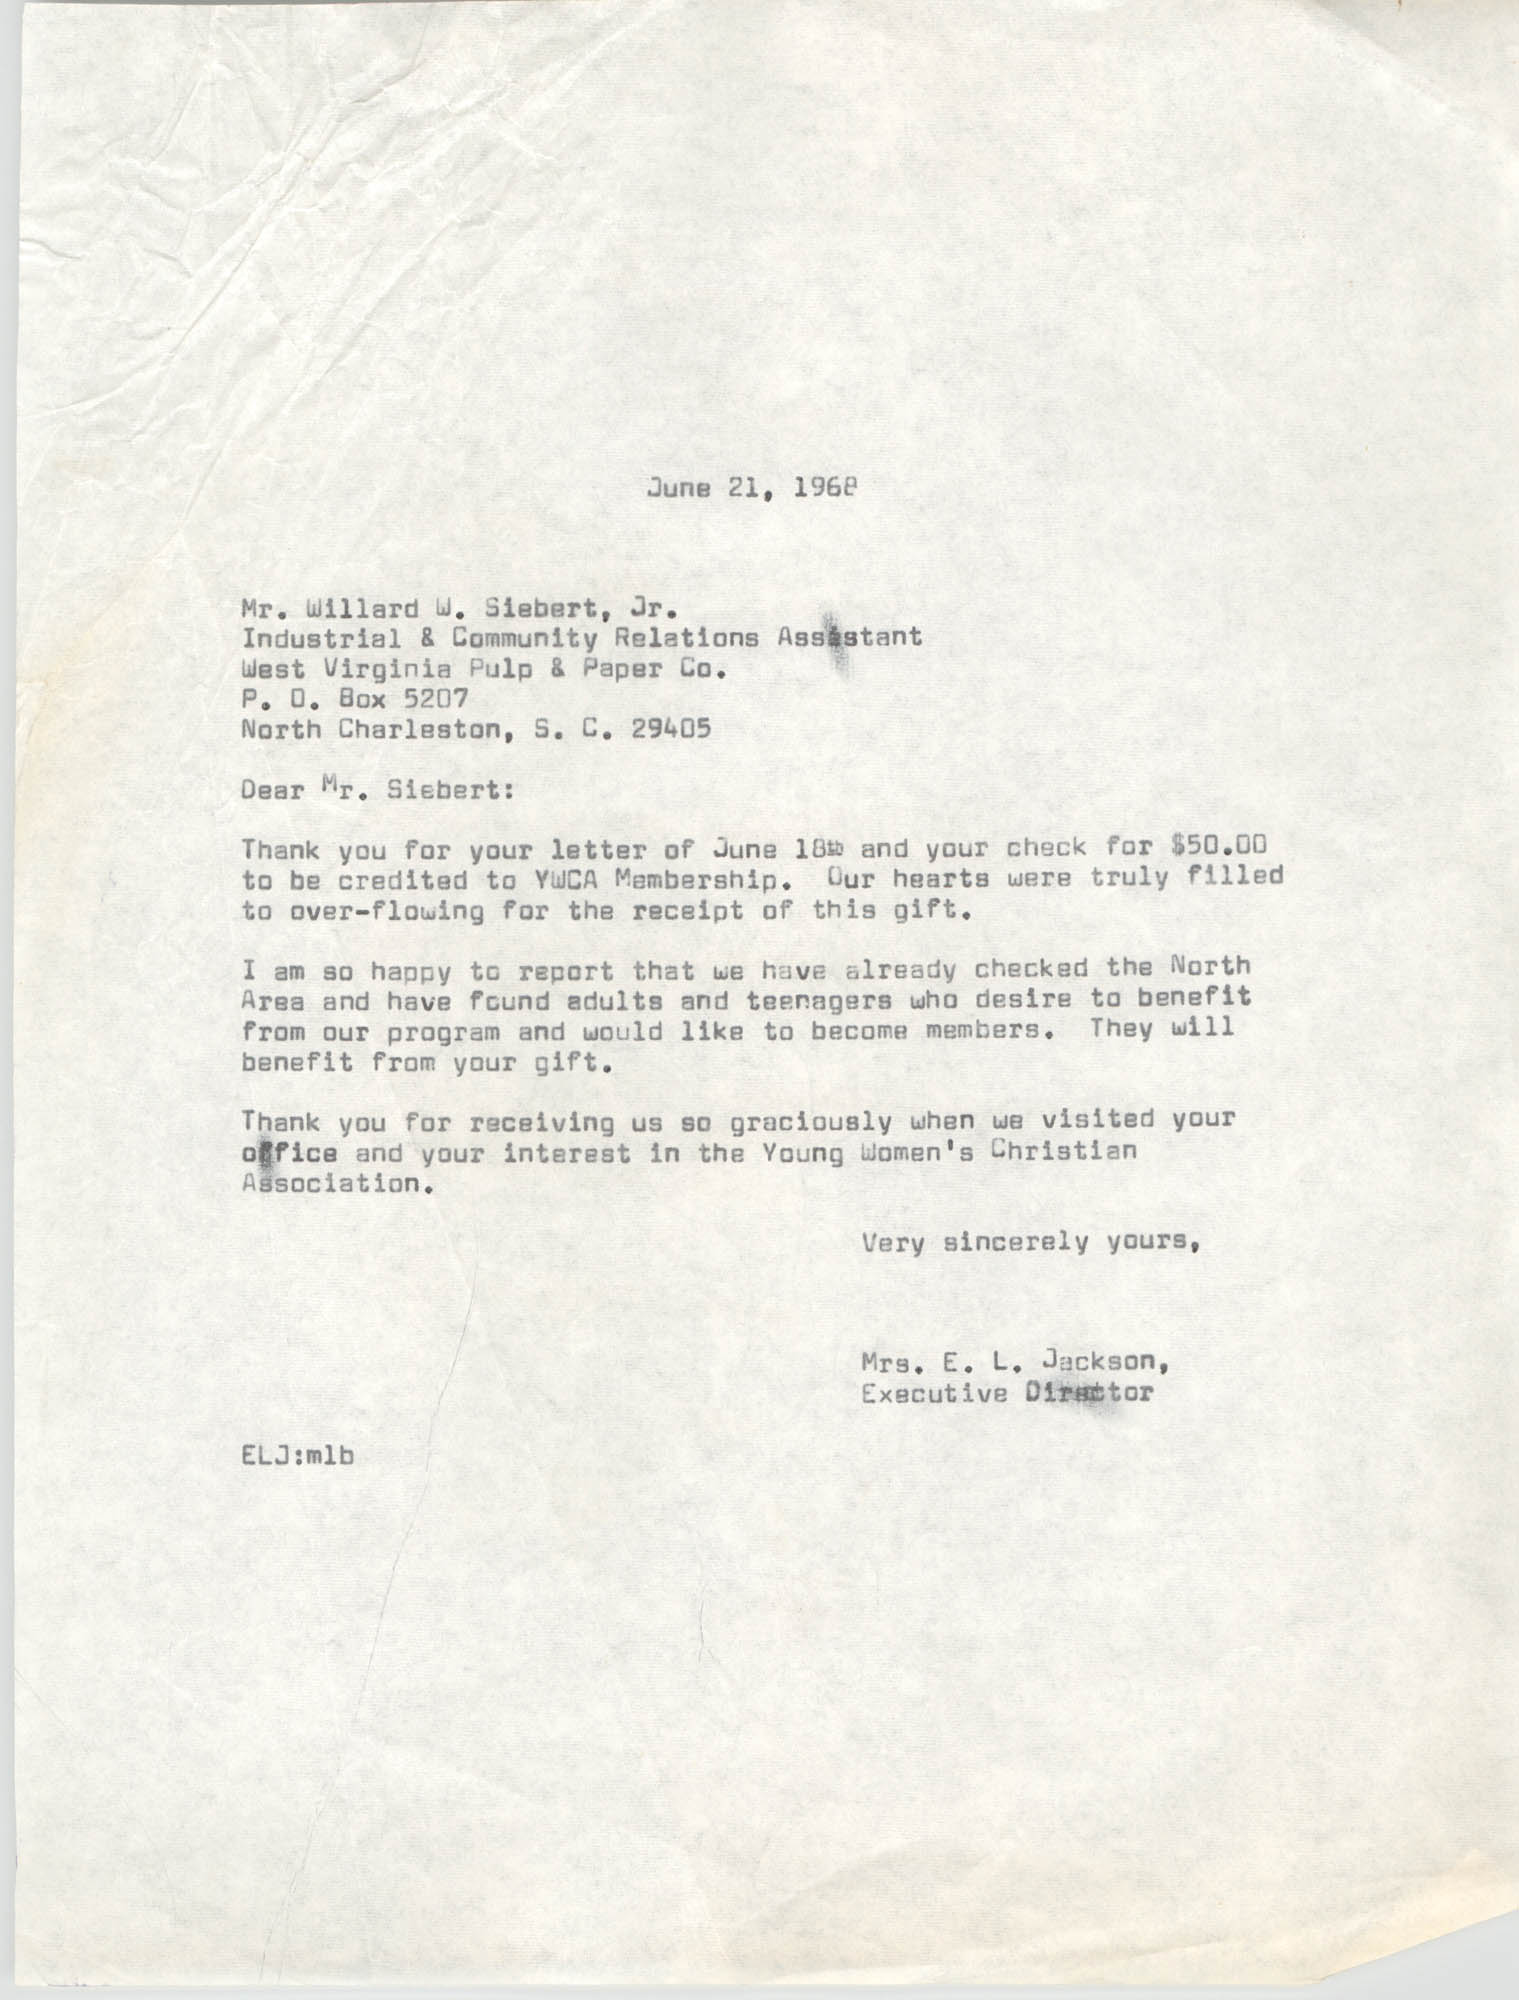 Letter from Christine O. Jackson to Willard W. Siebart, Jr., June 21, 1968